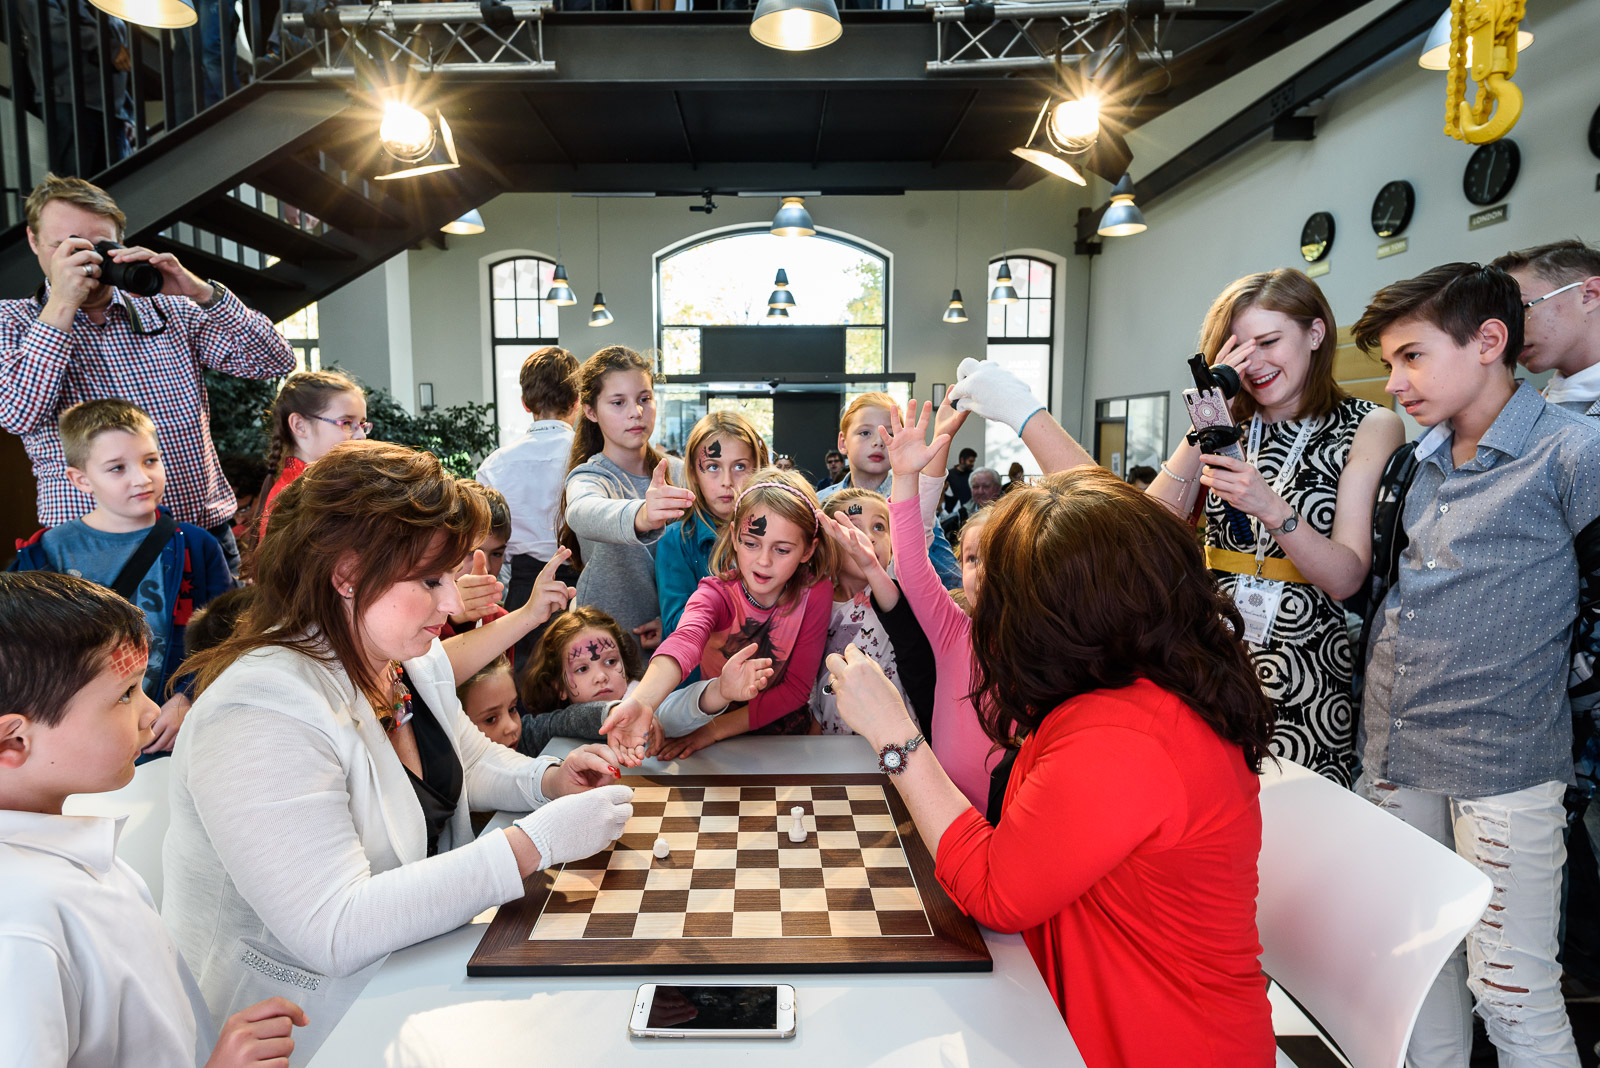 Judit and Sofia give away marzipan chess pieces to children